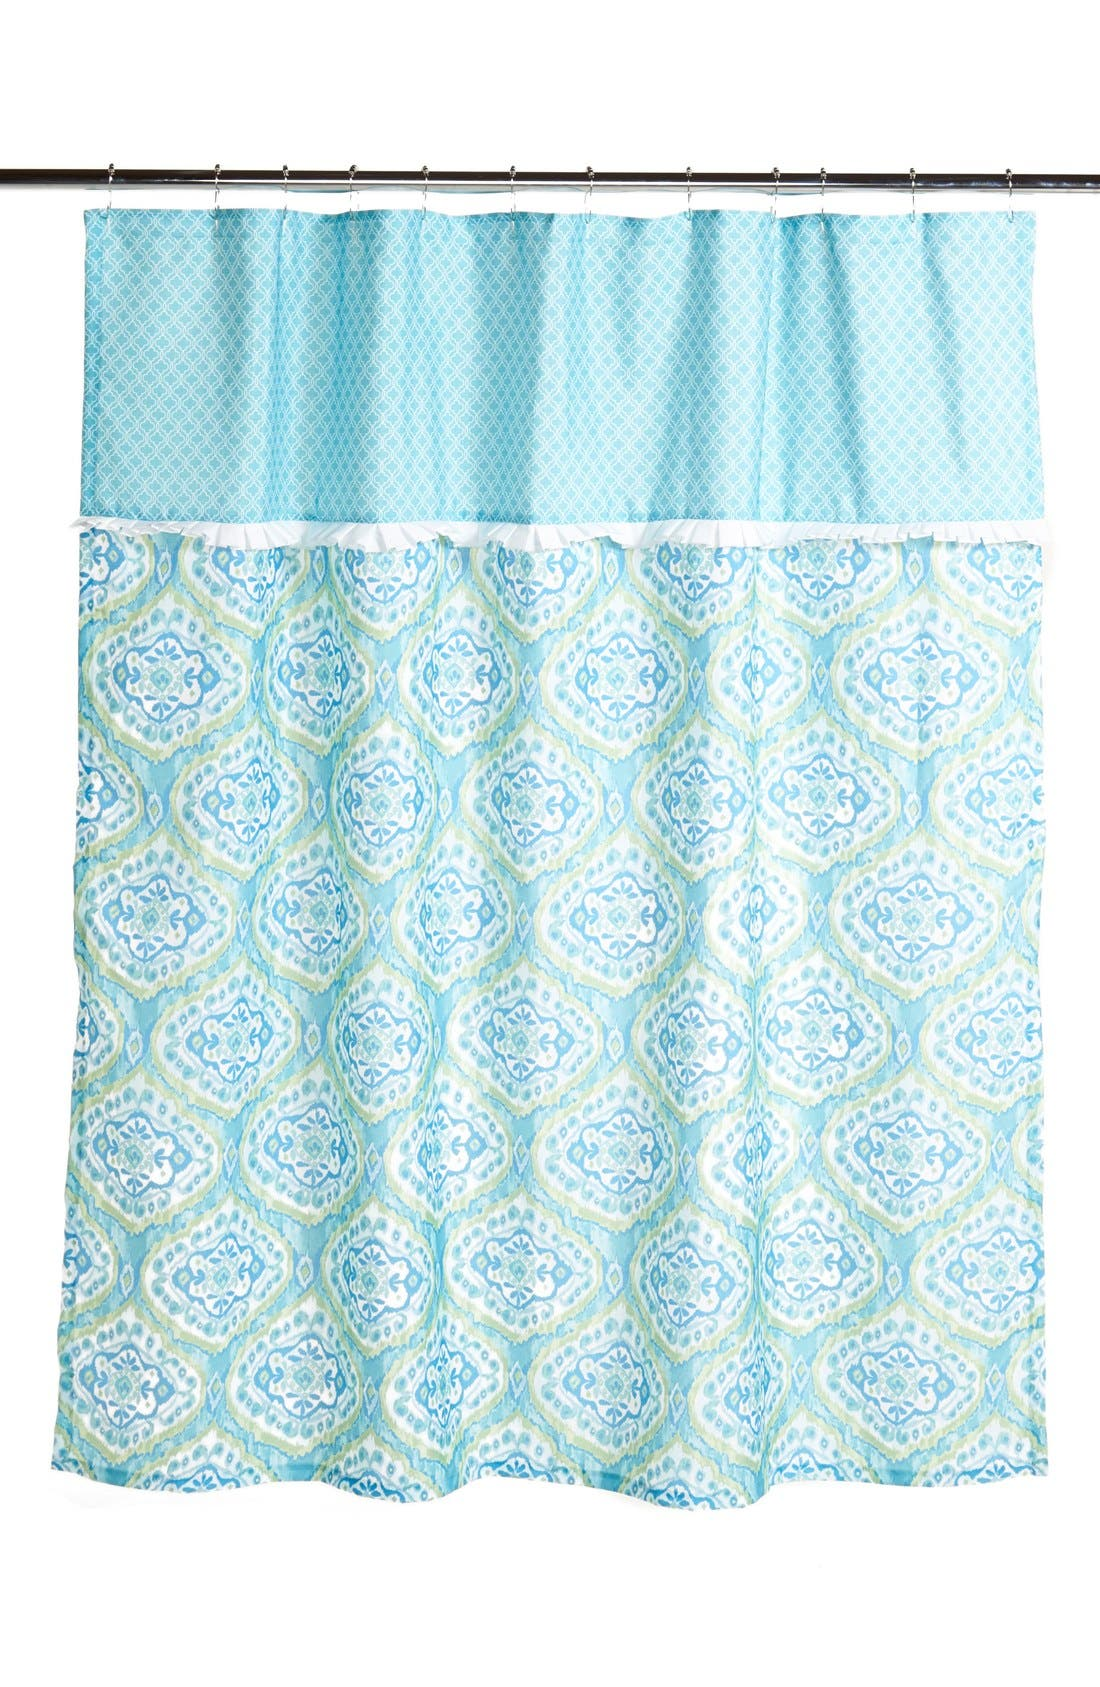 'Tangiers' Shower Curtain,                             Main thumbnail 1, color,                             440